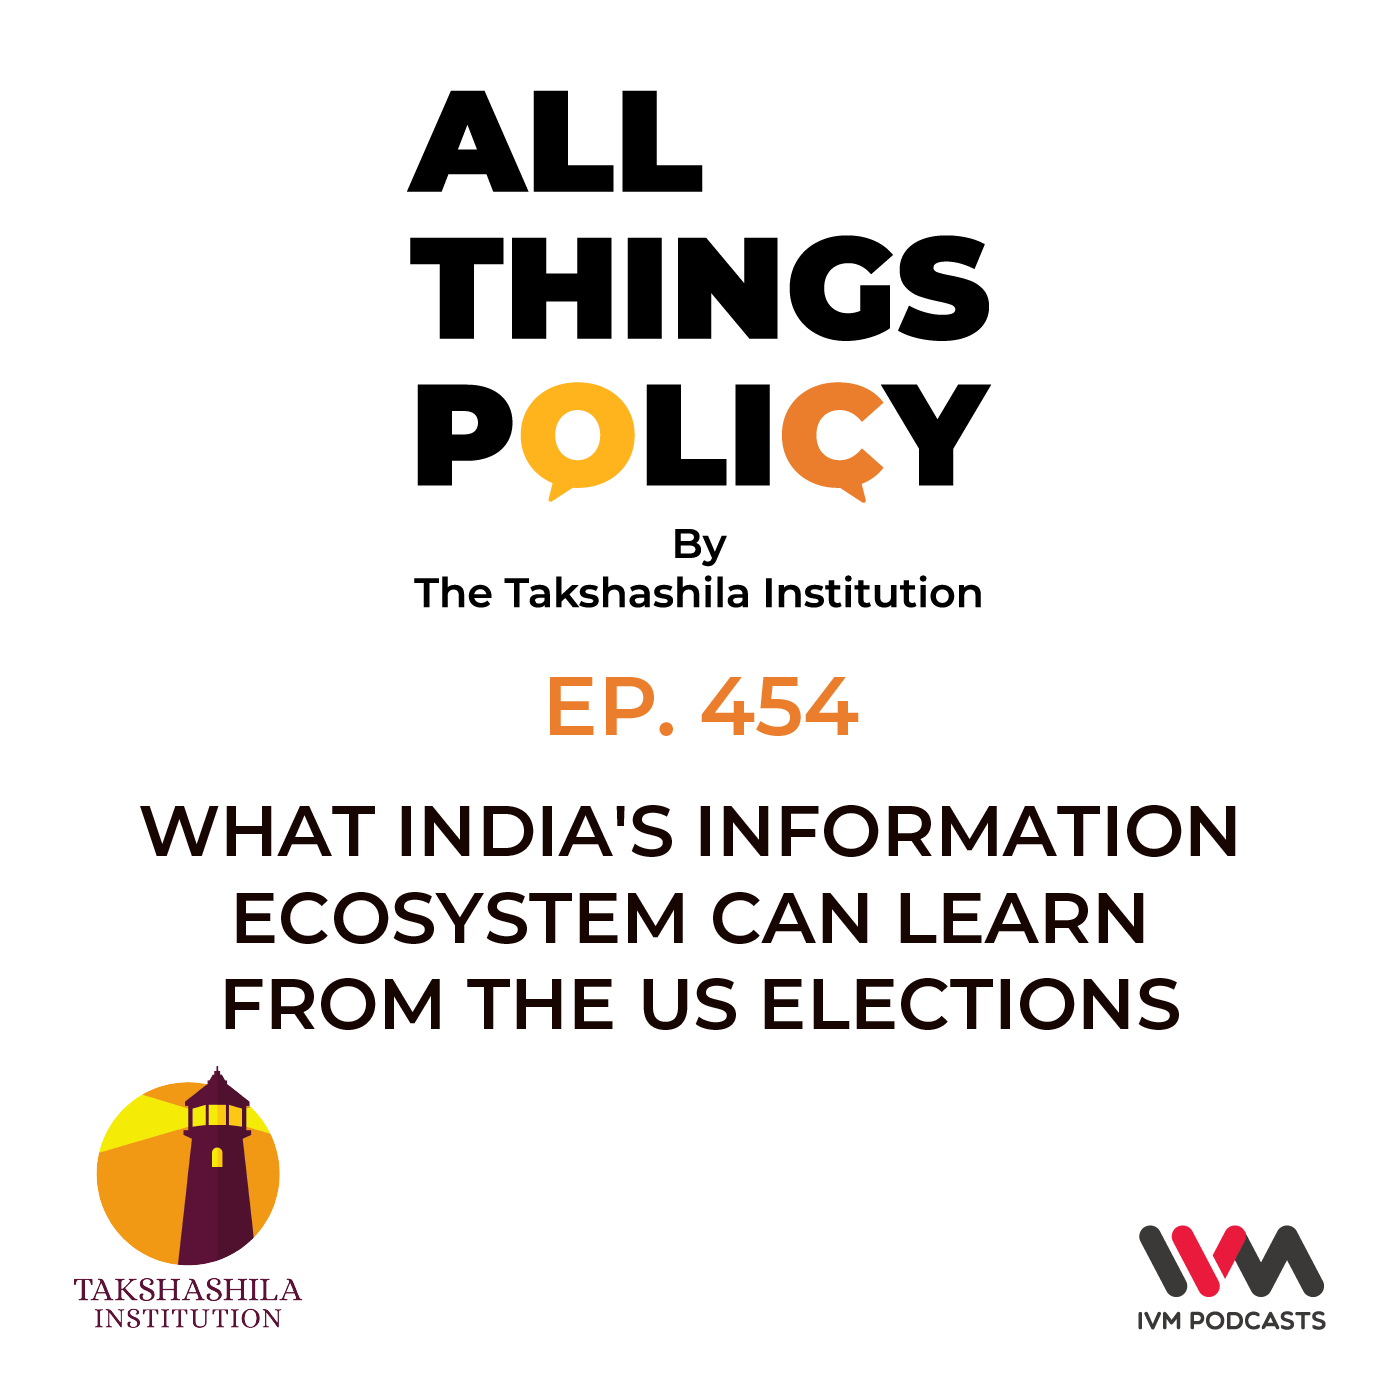 Ep. 454: What India's Information Ecosystem Can Learn from the US Elections